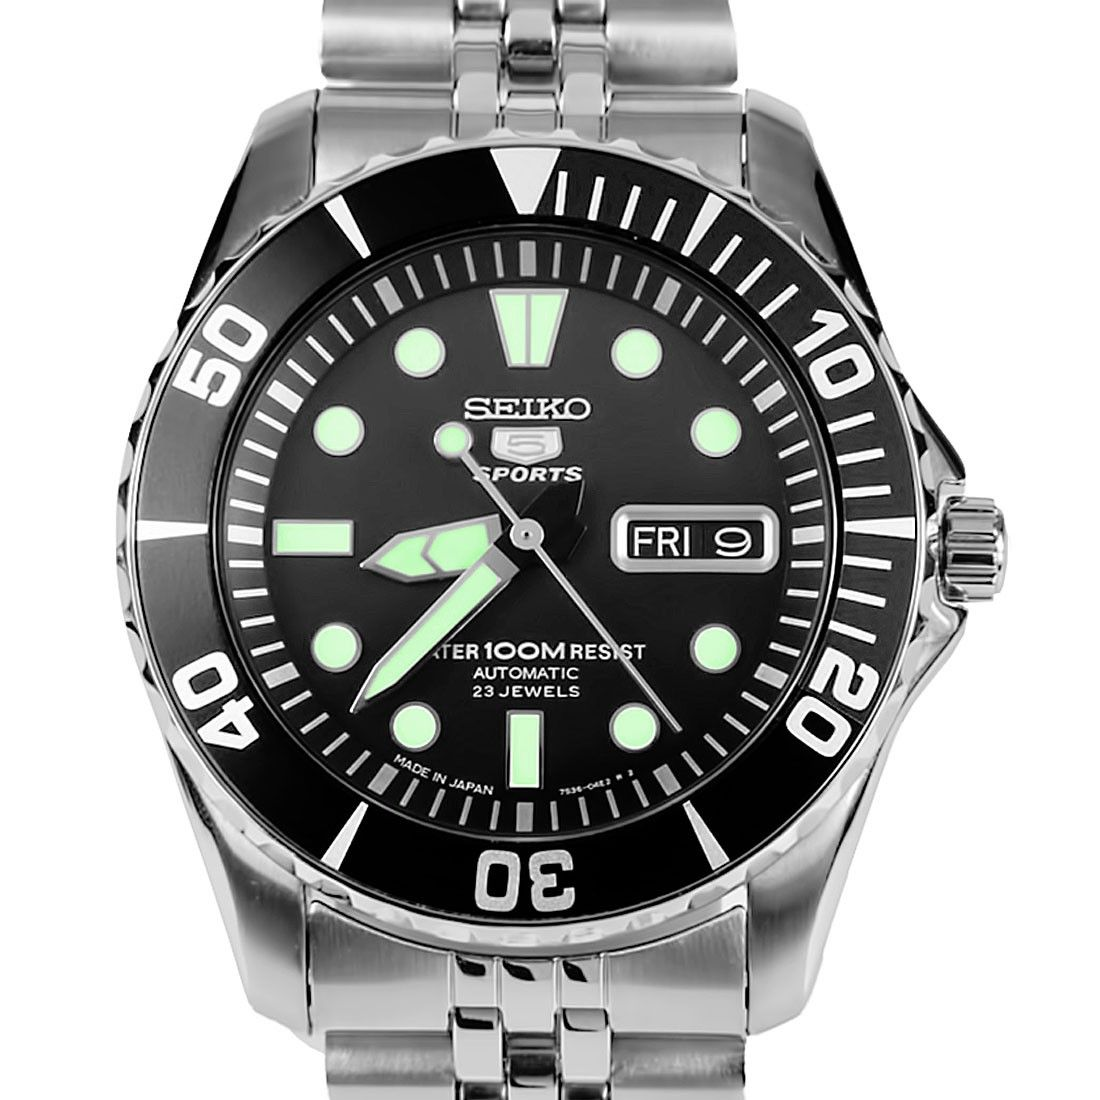 Seiko 5 Sports Automatic Mens Diving Watch SNZF17 SNZF17J